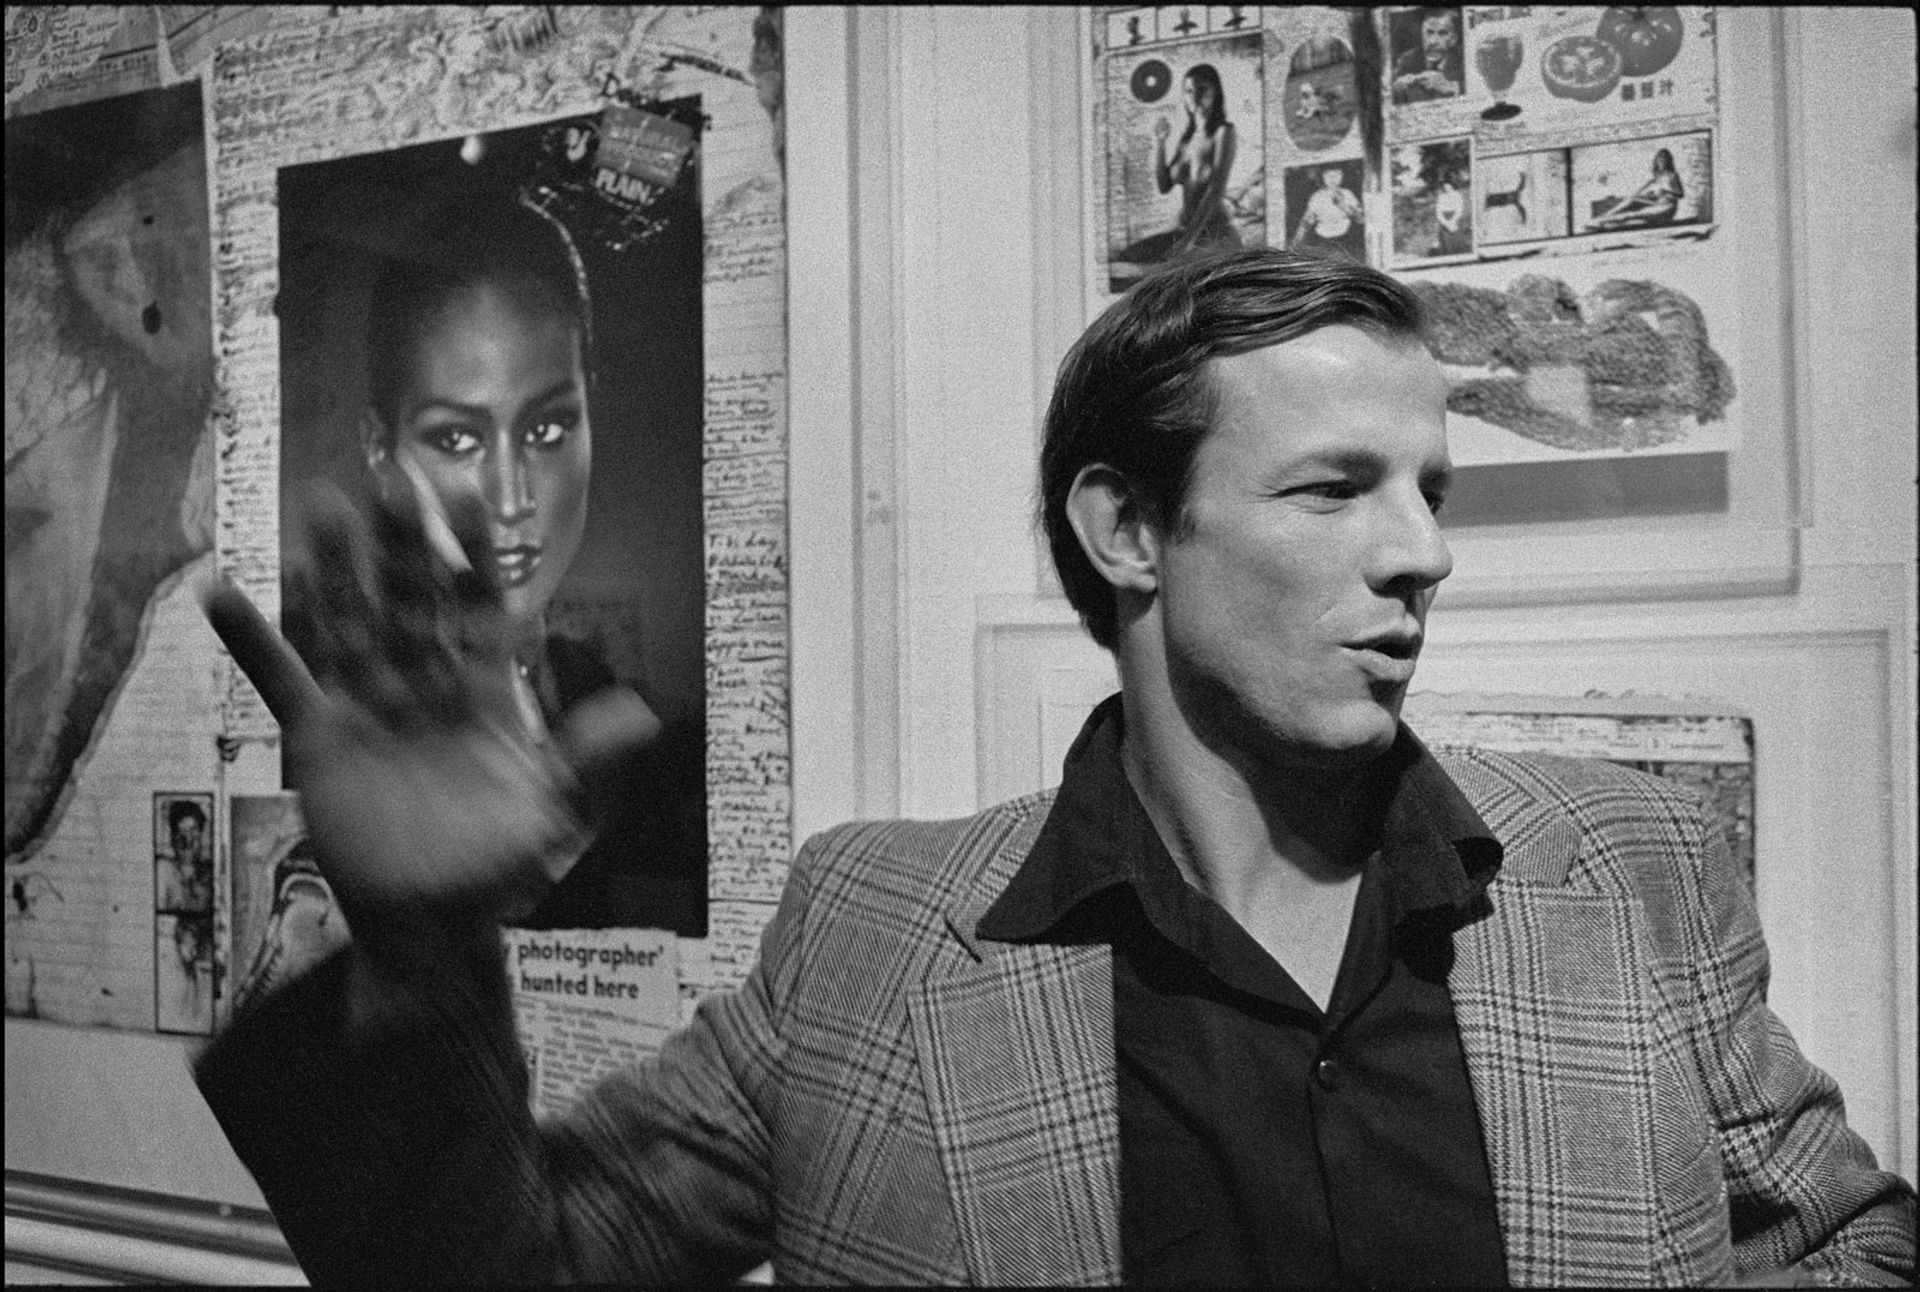 Peter Beard at the opening his exhibition at New York's International Center of Photography in 1977 © Photo: Chuck Fishman/Getty Images